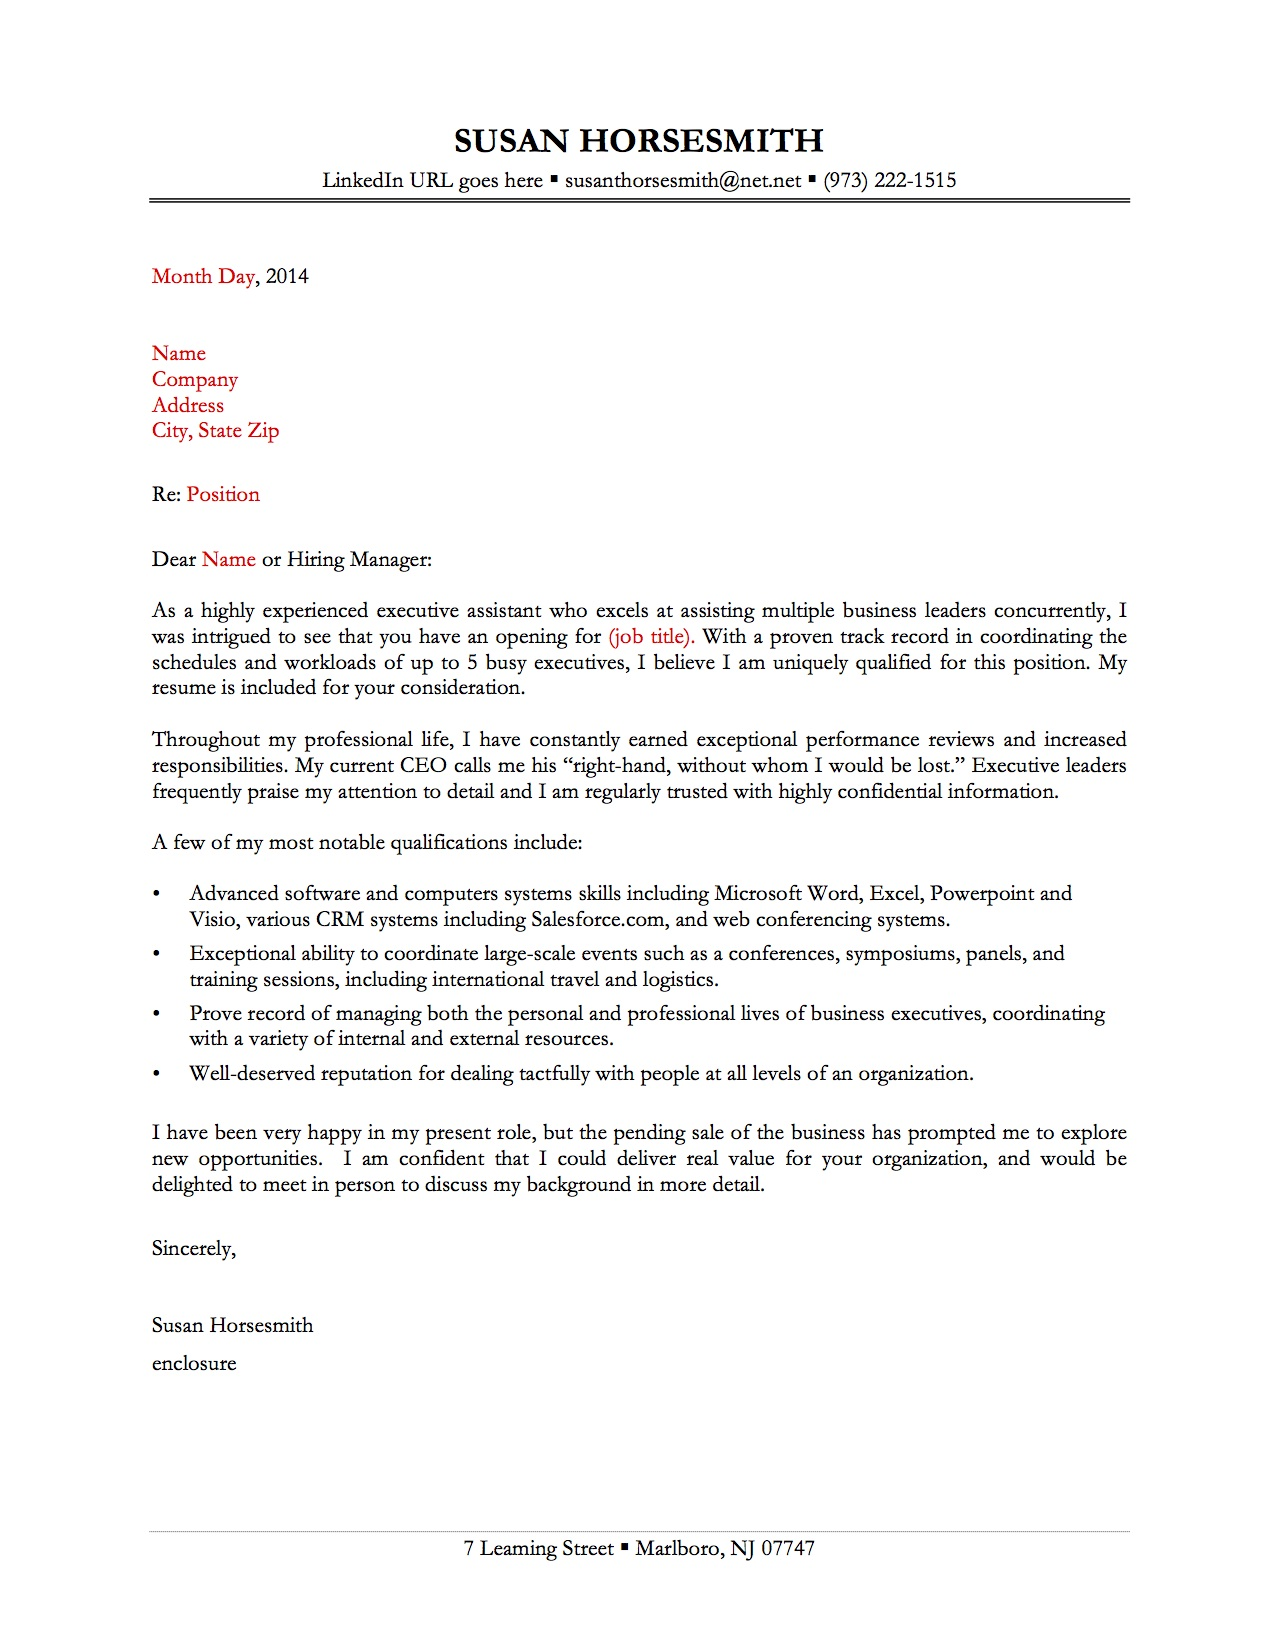 resume cover letter sample 2012 aafi